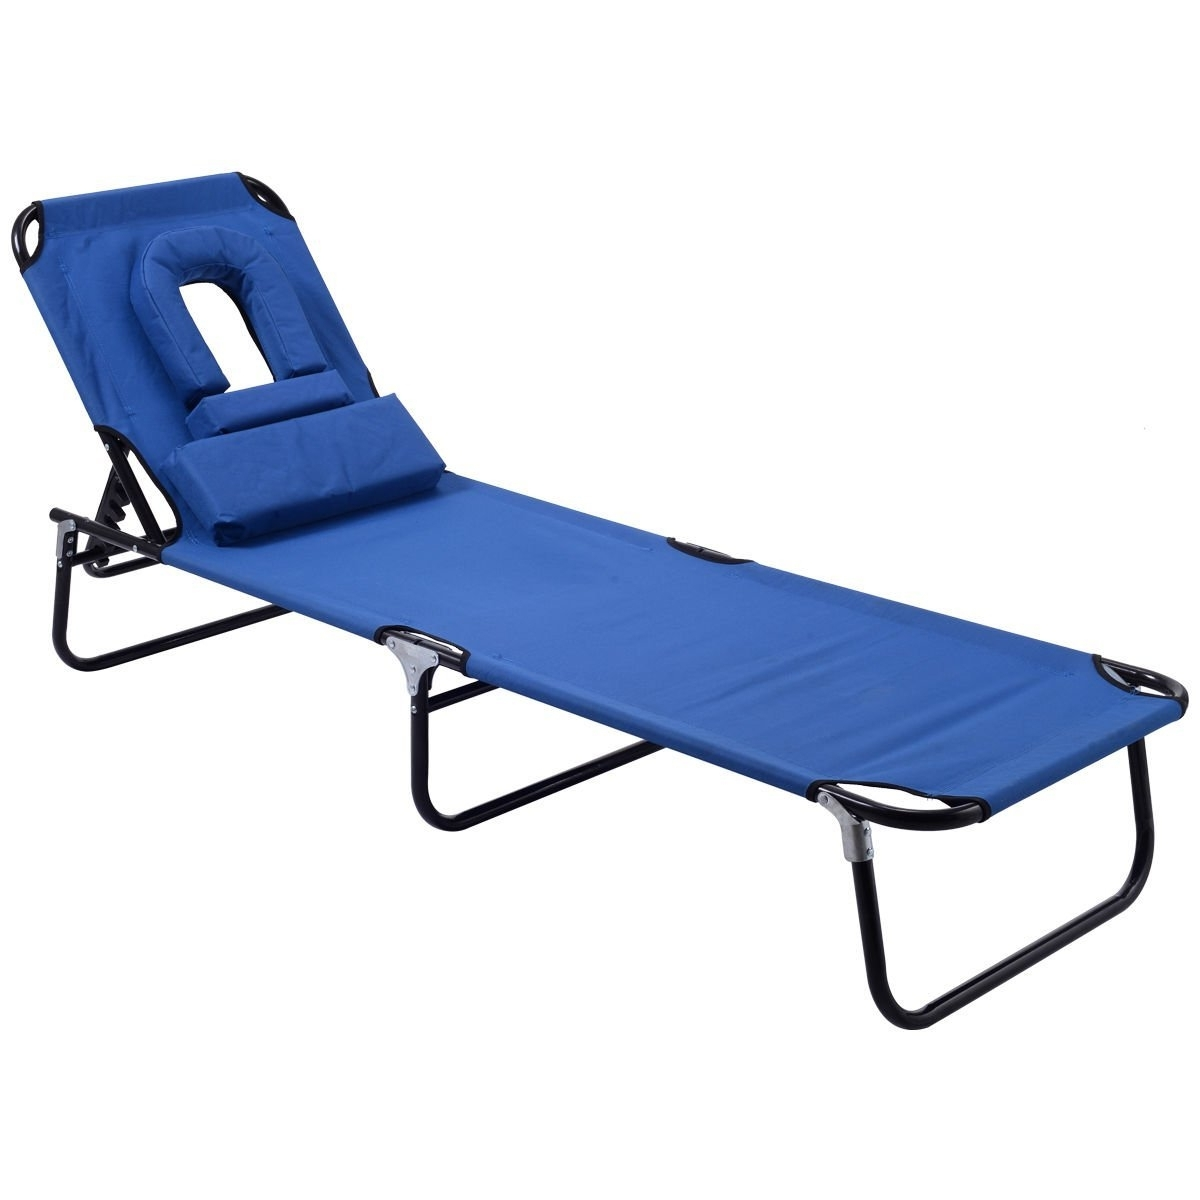 Favorite Folding Chaise Lounge Chairs For Outdoor For Amazon: Goplus Folding Chaise Lounge Chair Bed Outdoor Patio (View 9 of 15)